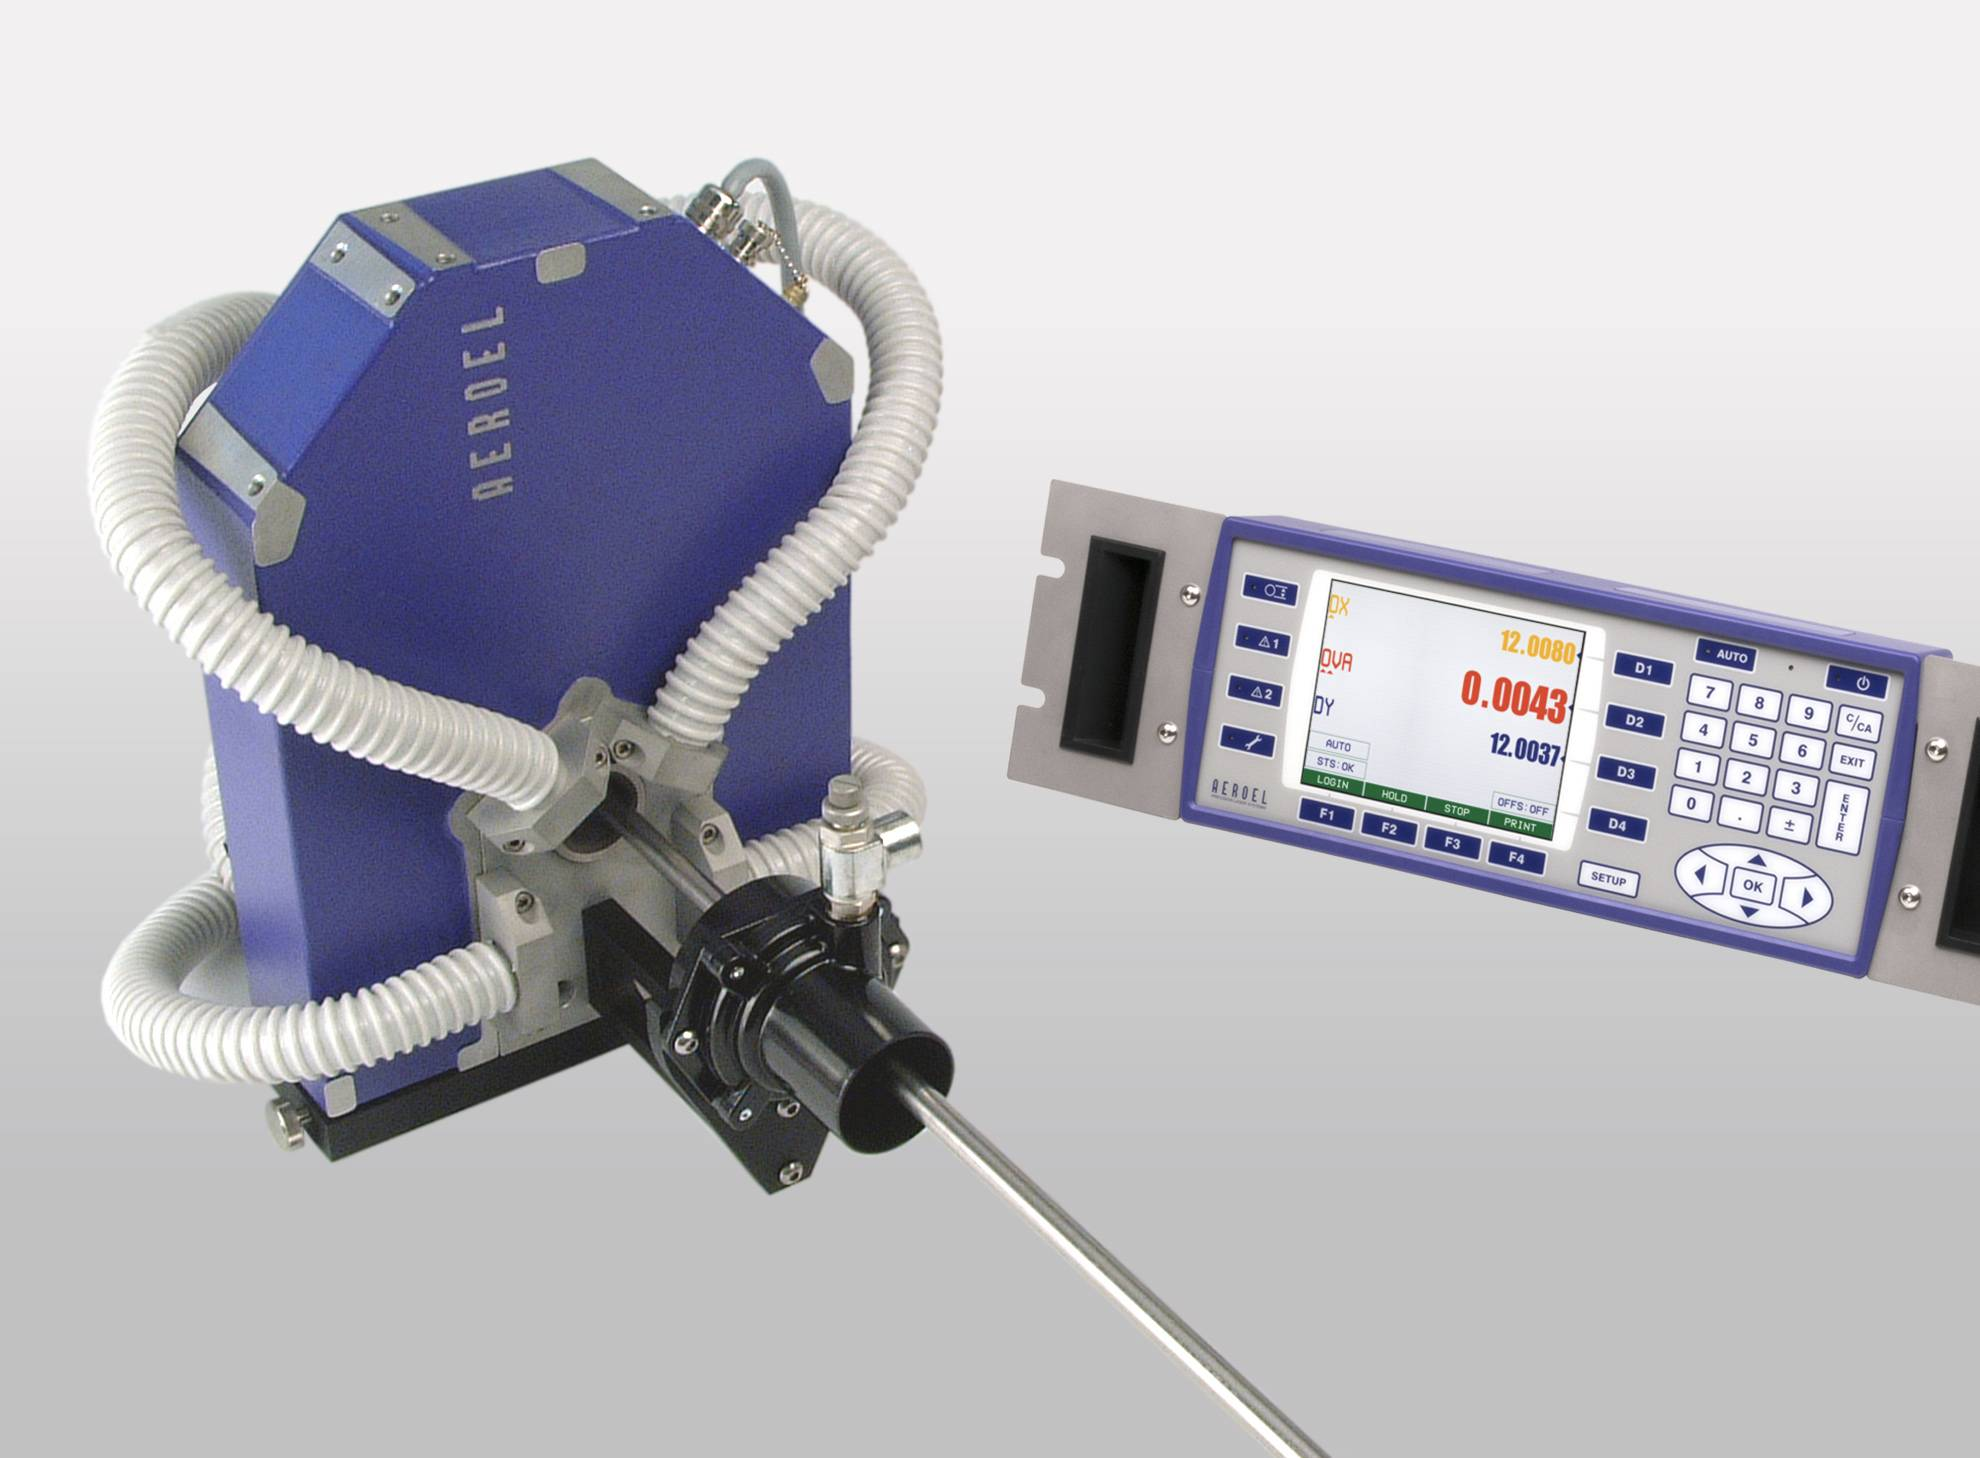 The Aereol Wireline system from Marposs